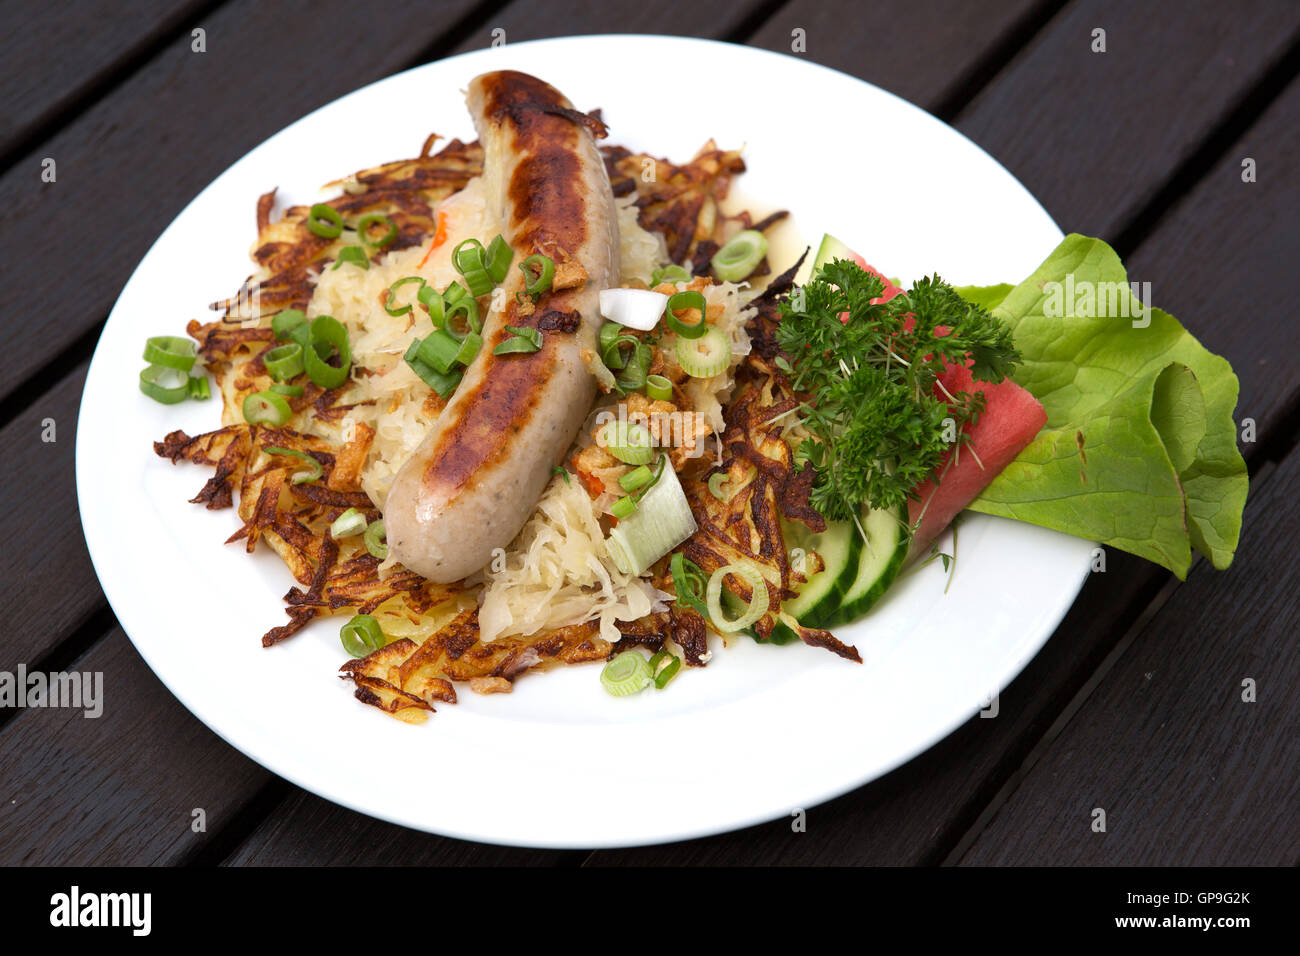 Thuringian bratwurst (grilled sausage) served with sauerkraut and salad in Thuringia, Germany. The dish is a regional Stock Photo